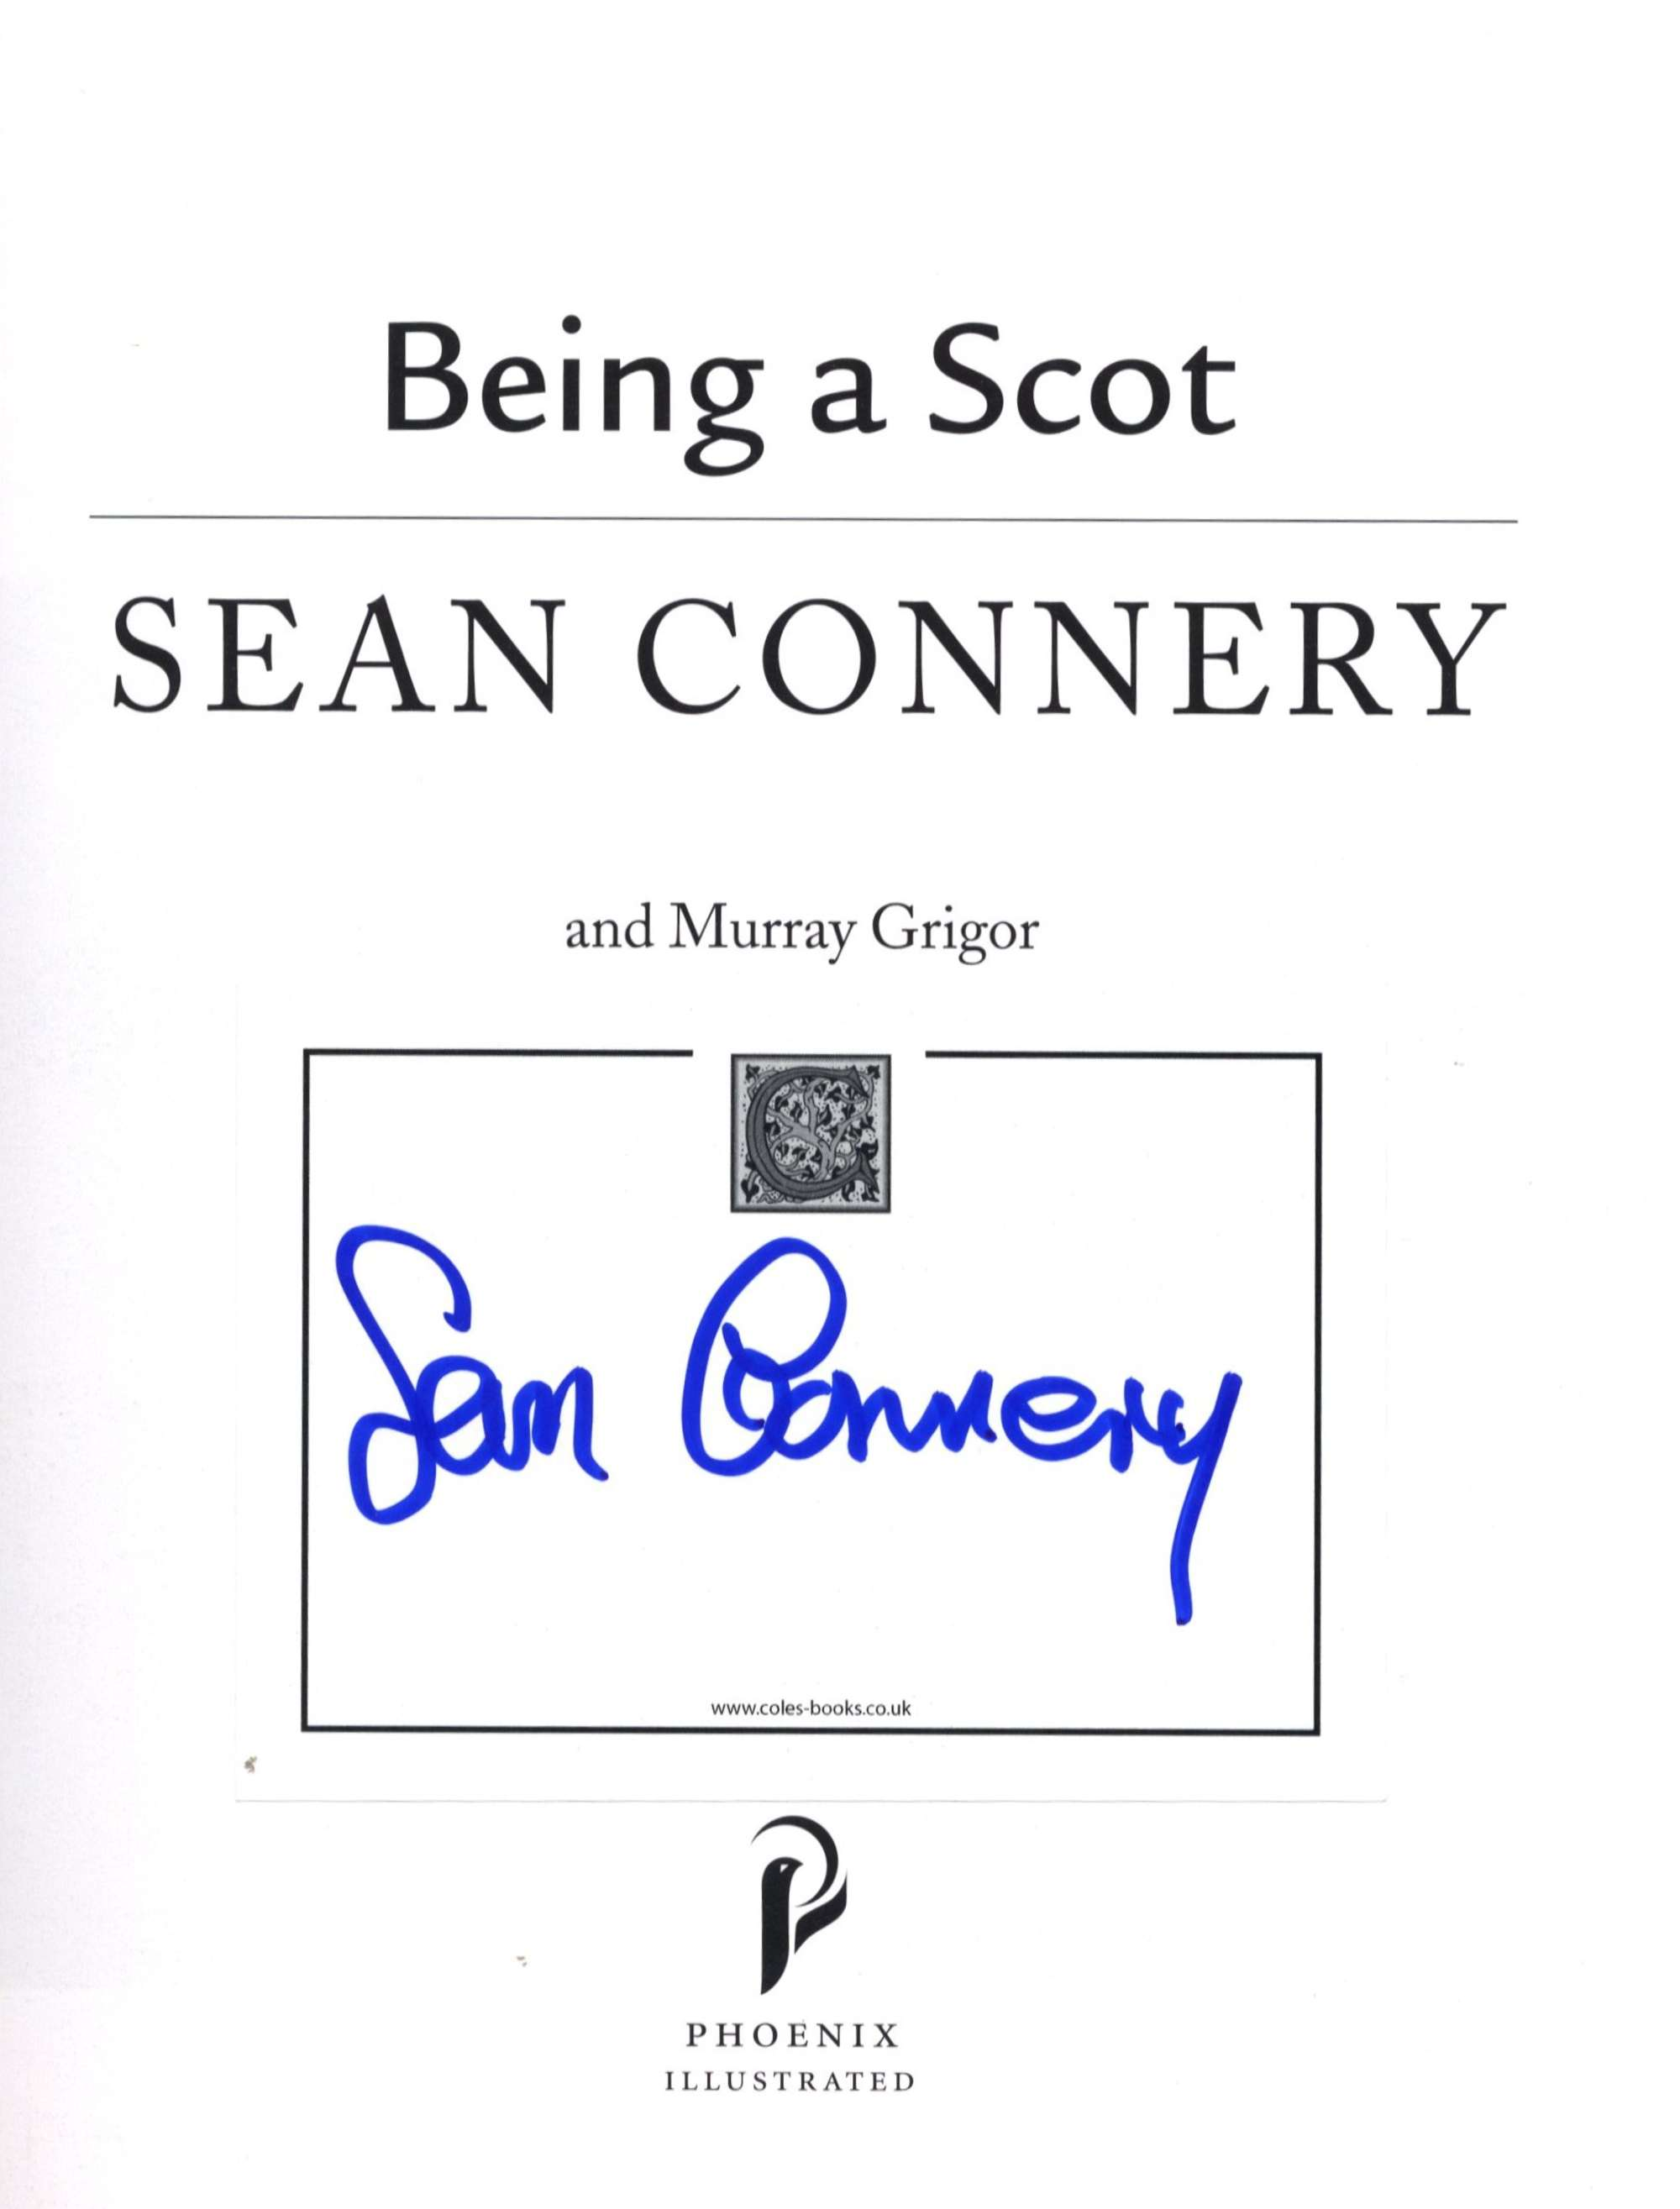 146 | JAMES BOND: Sean Connery signed paperback edition of B